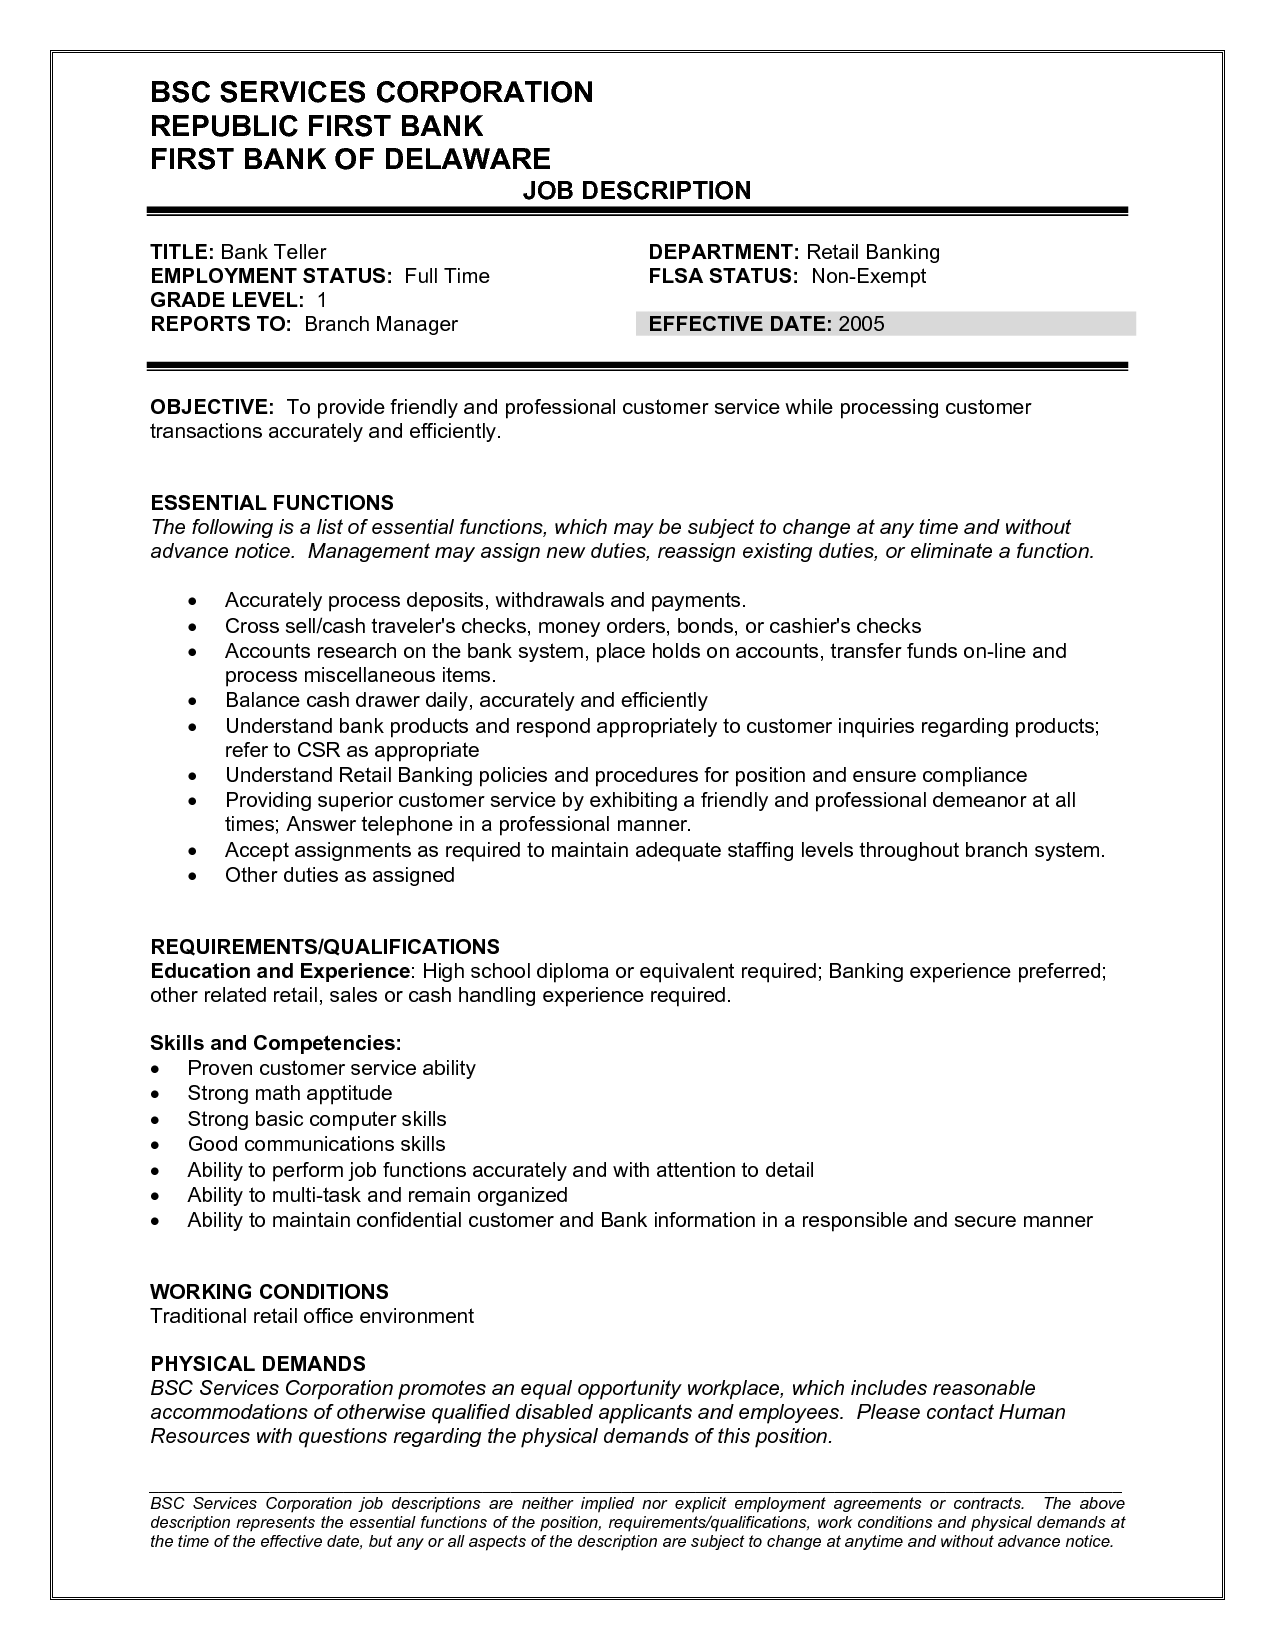 Teller Job Description Resume bank teller job duties and responsibilities